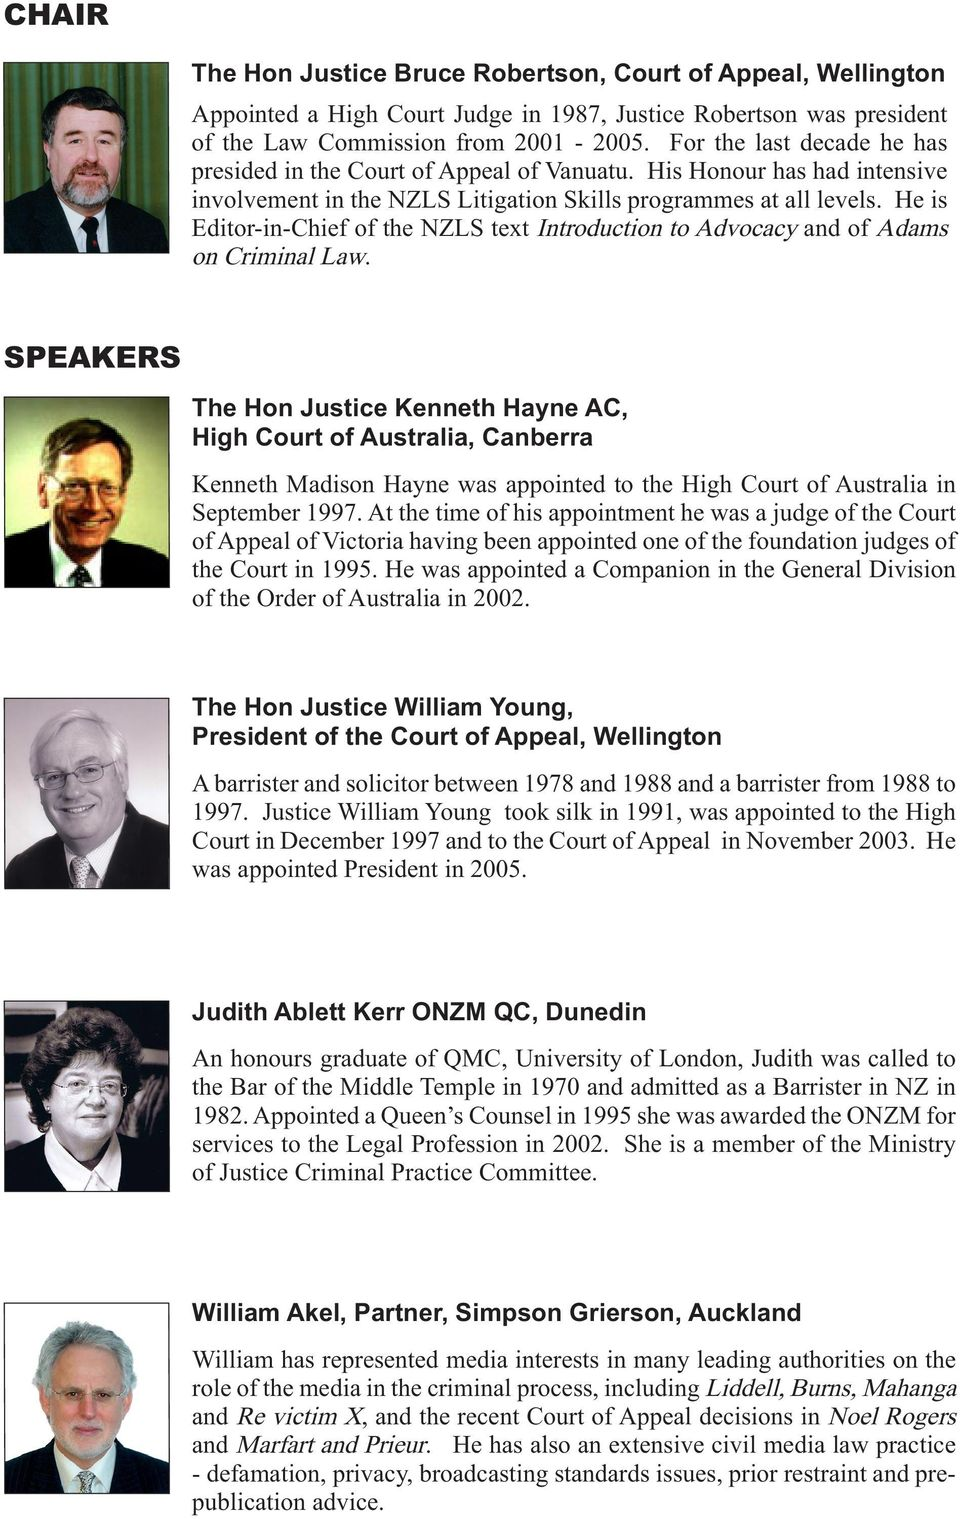 He is Editor-in-Chief of the NZLS text Introduction to Advocacy and of Adams on Criminal Law.